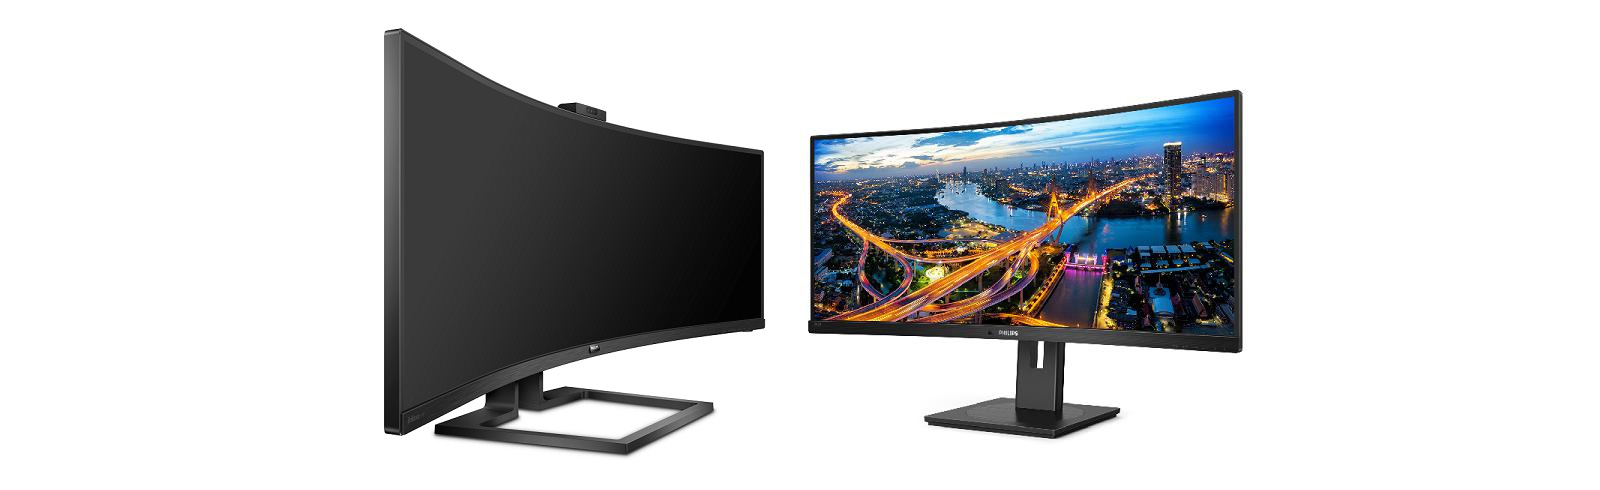 Philips displays a plethora of monitors for professionals and gamers at the IFA 2019 in Berlin